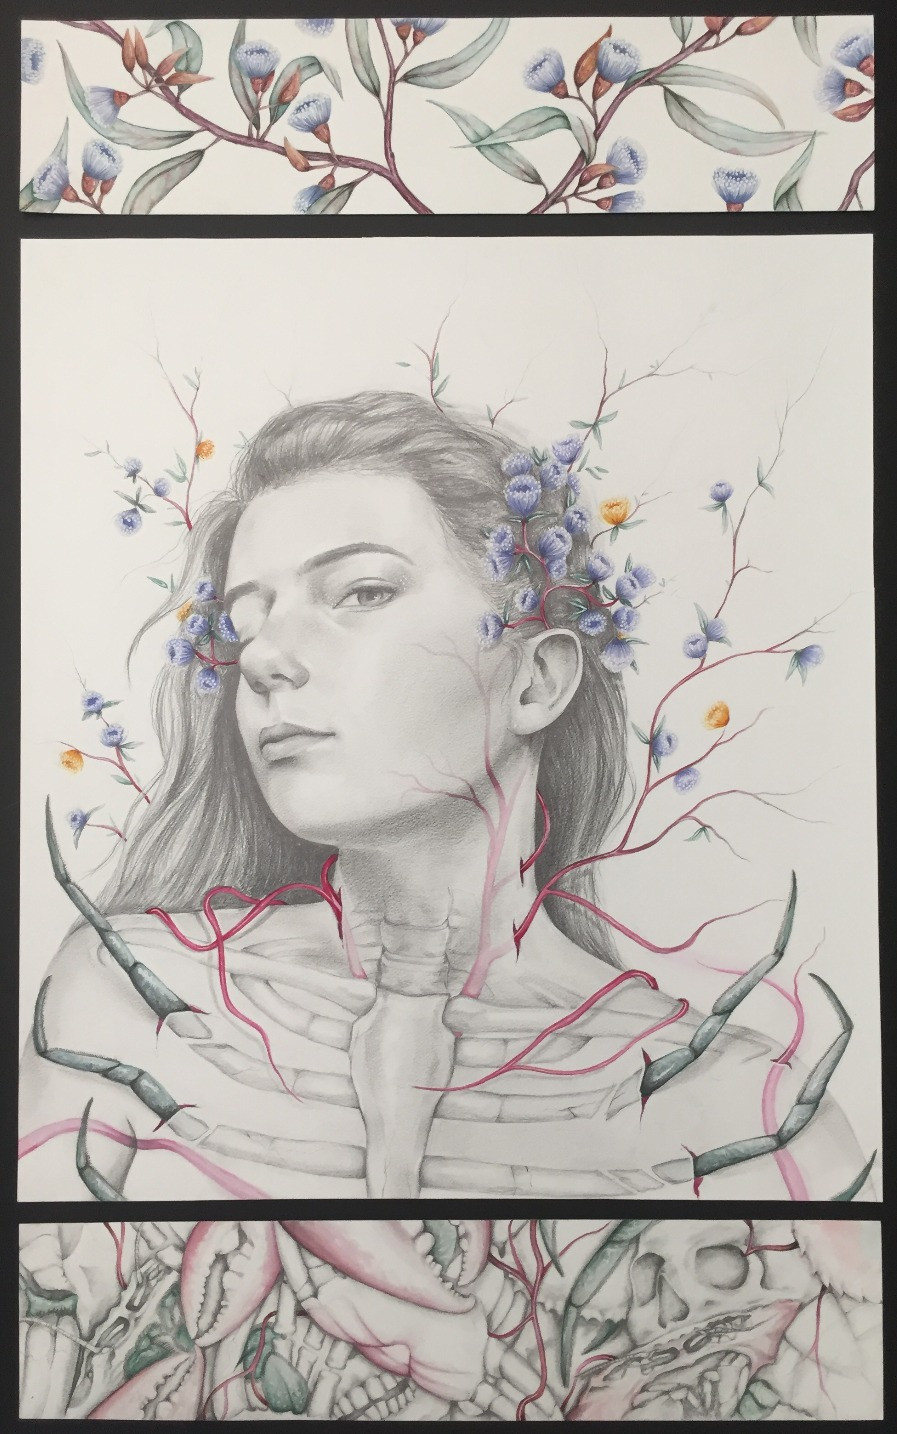 Ayla Thorbjornsen, Co-existence Graphite pencil, watercolour and white gel ink pen on paper